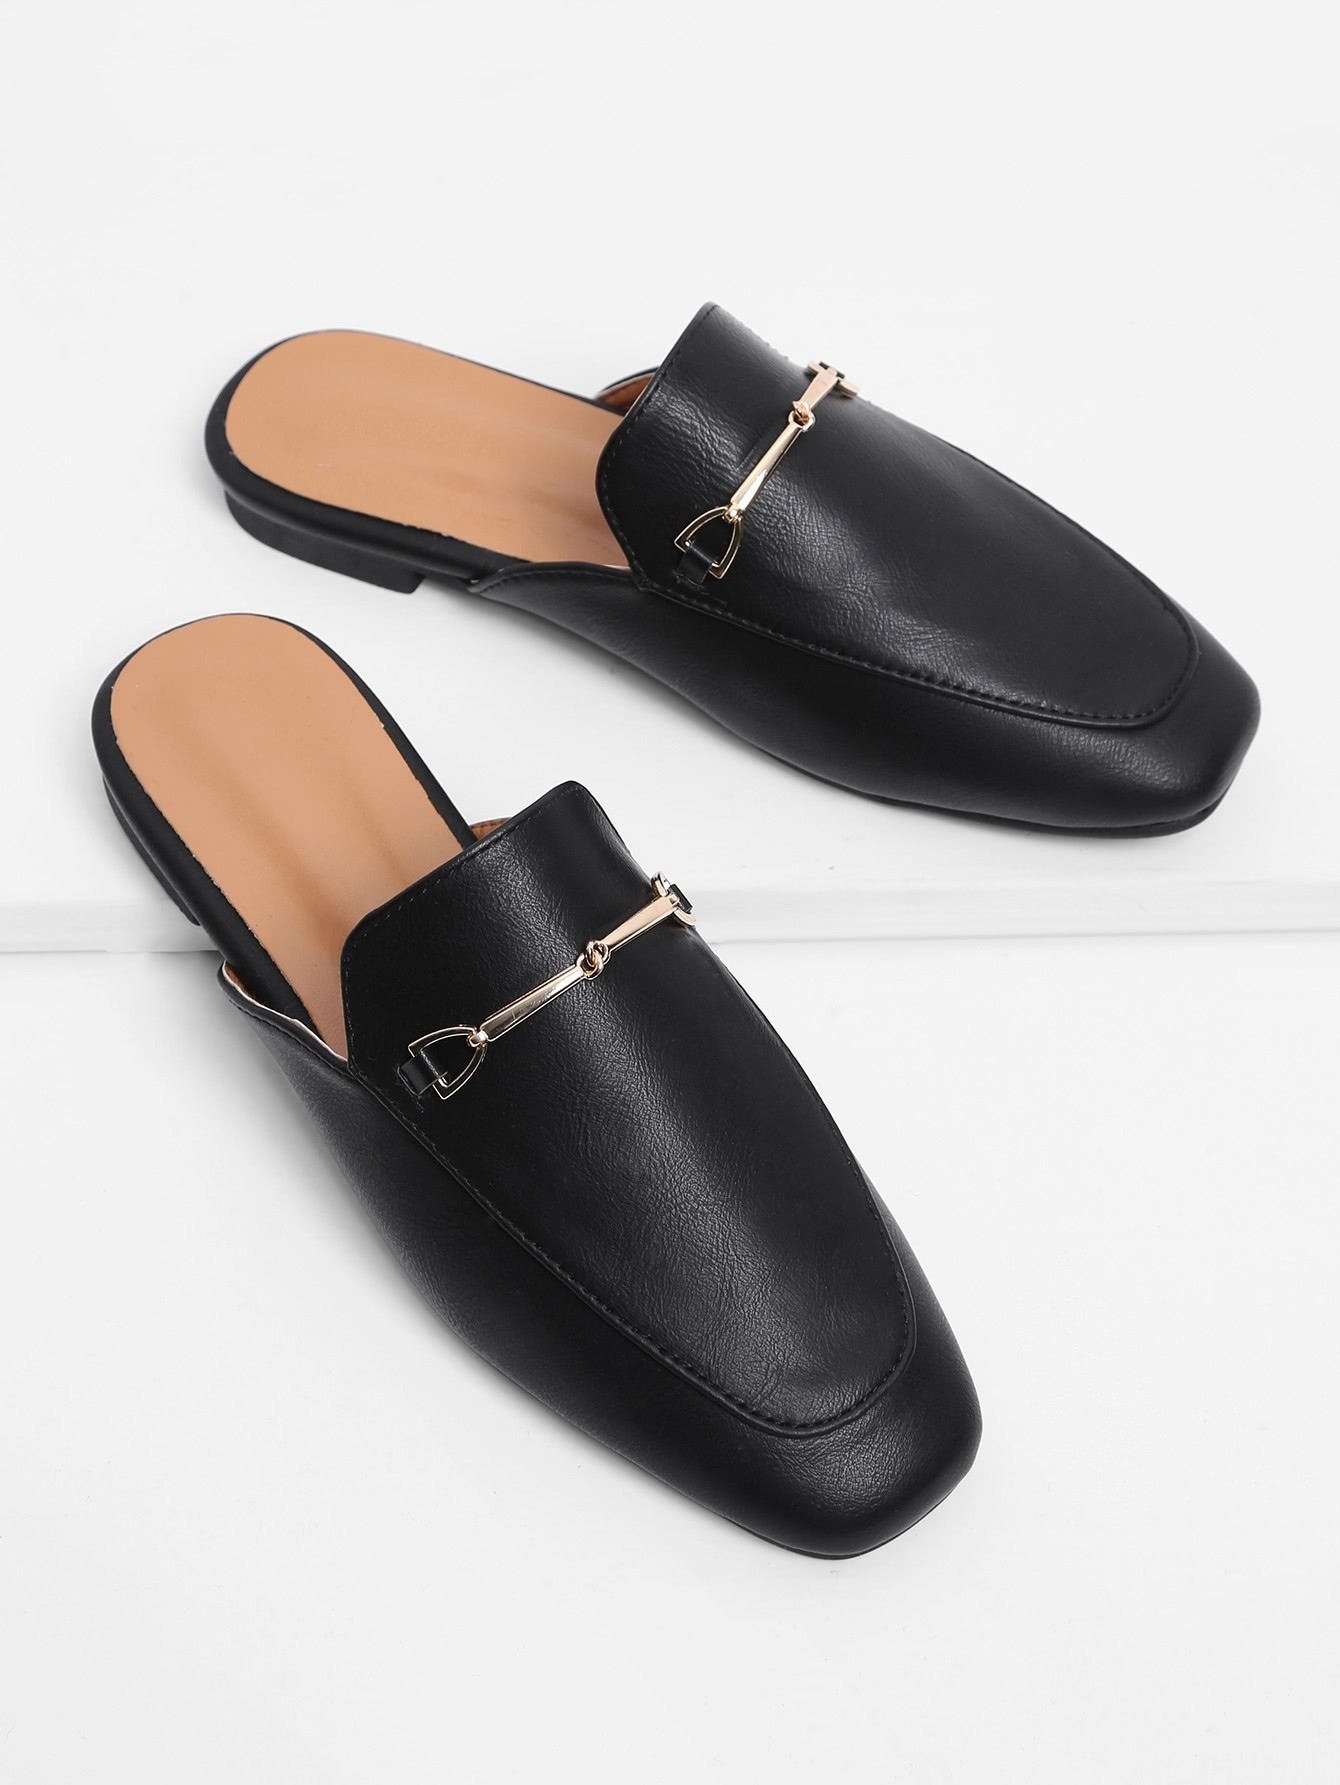 Metal Detail Square Toe PU Flats beautoday loafers women top quality brand flats genuine leather metal decorated square toe calfskin shoes mix colors 15701